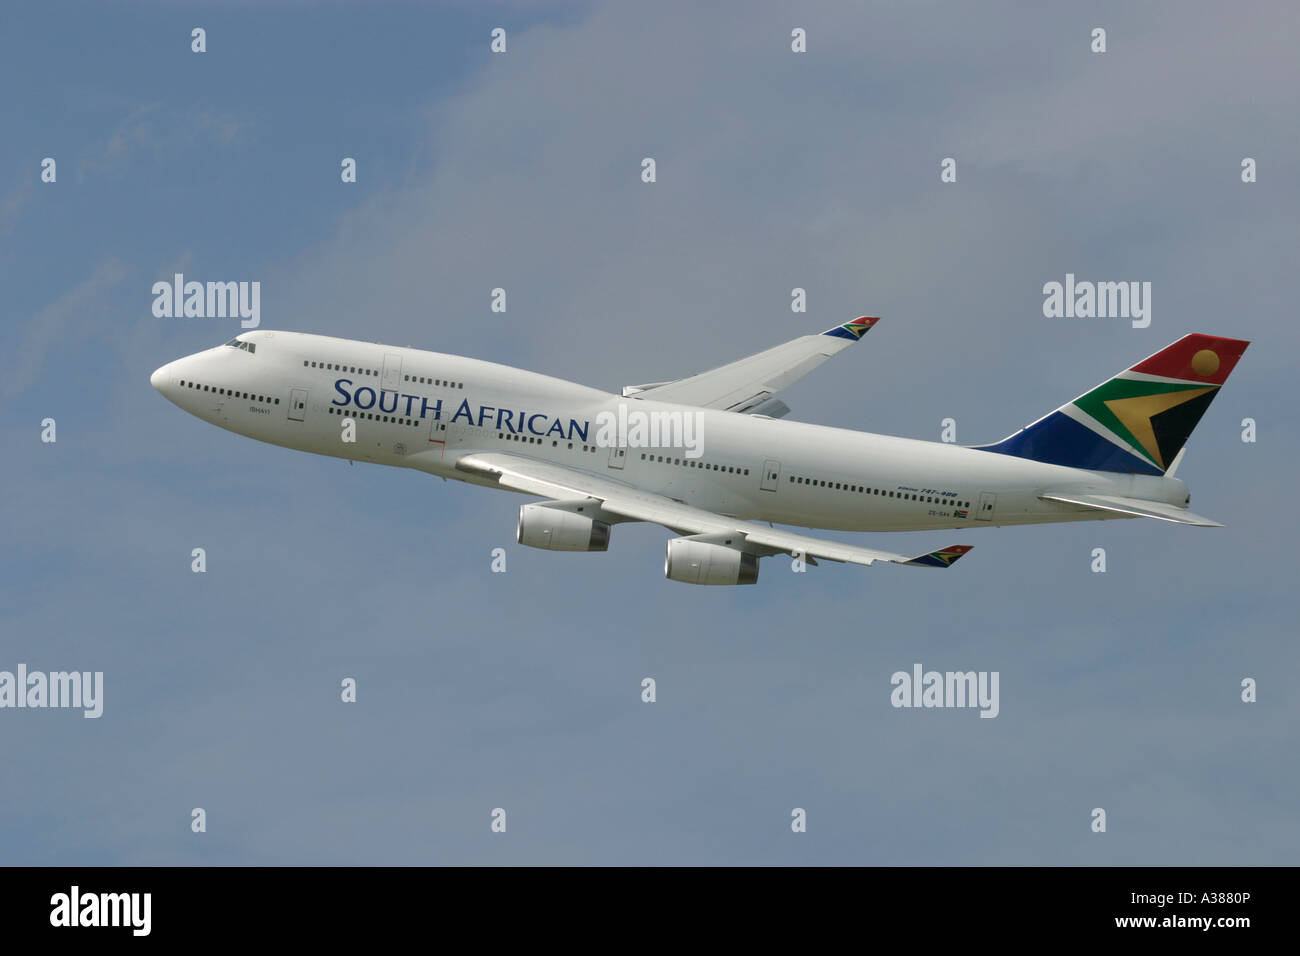 South African Airways Boeing 747 during flight - Stock Image